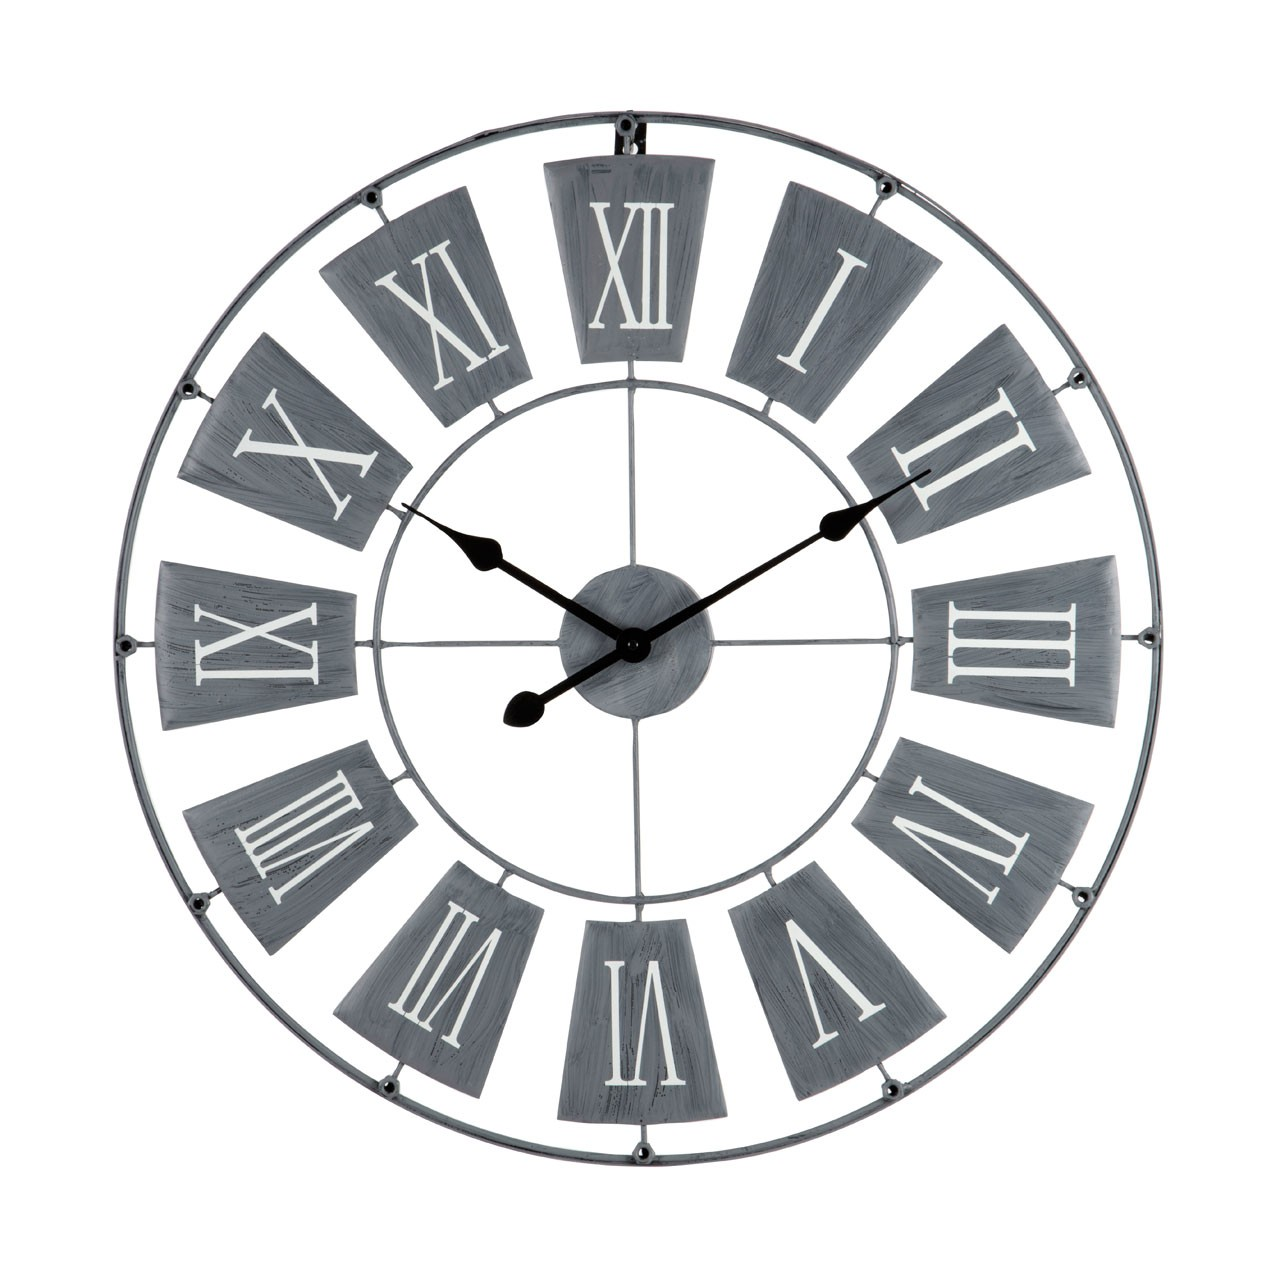 Prime Furnishing Roman Numeral Round Metal Wall Clock - Grey